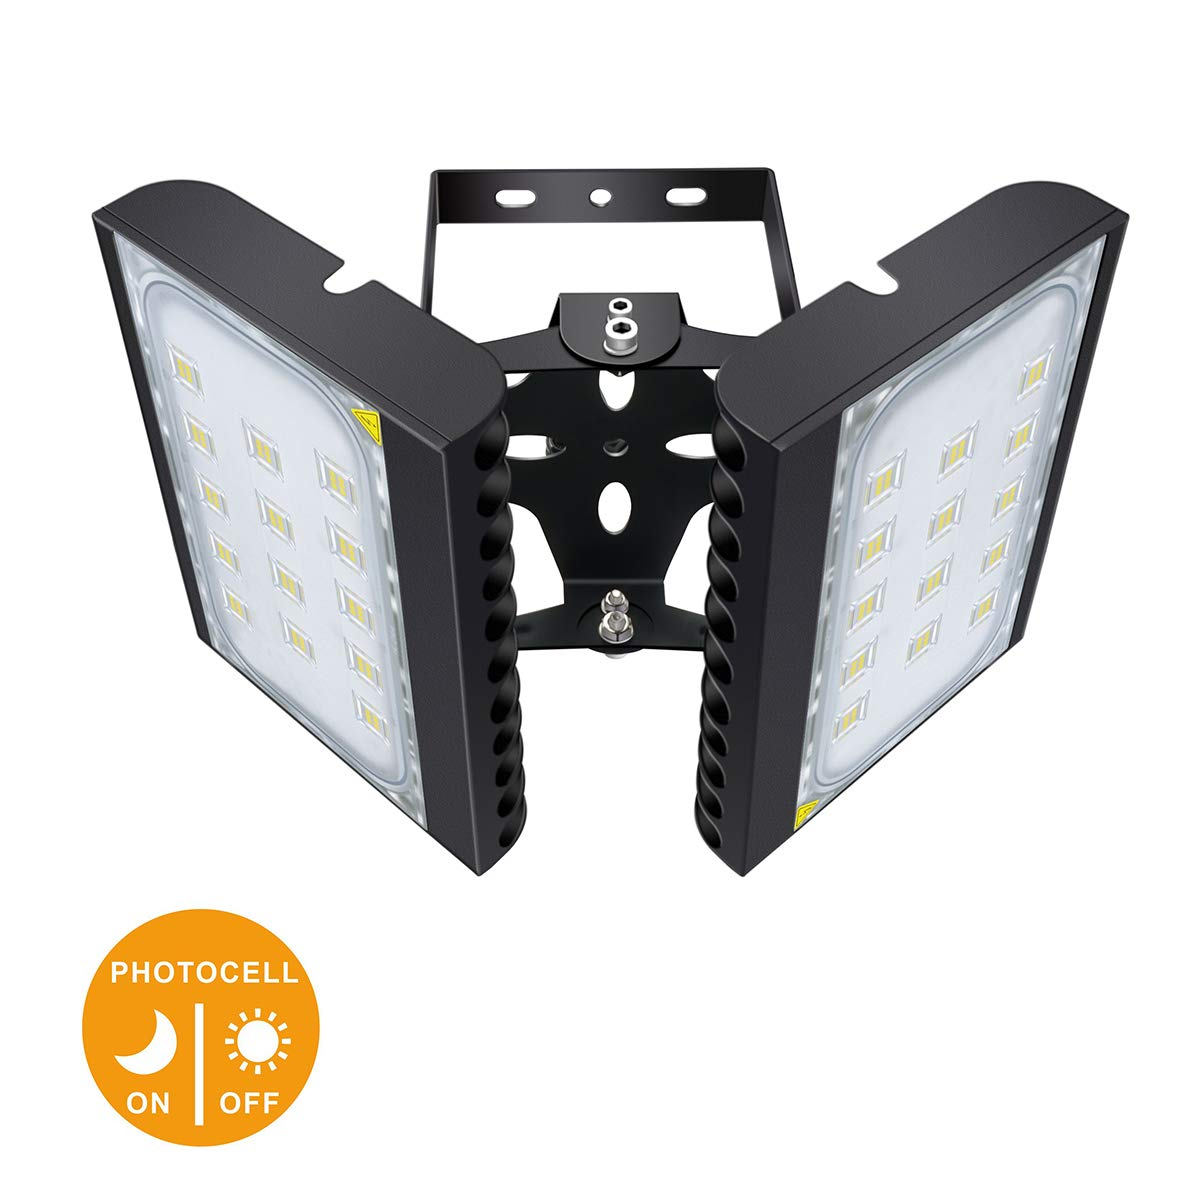 LED Flood Light, STASUN 200W 18000lm Dusk to Dawn Outdoor Lighting with Wide Lighting Area (Photocell Included), 6000K, OSRAM LED Chips, IP66 Waterproof Security Lights for Yard, Street, Parking Lot by STASUN